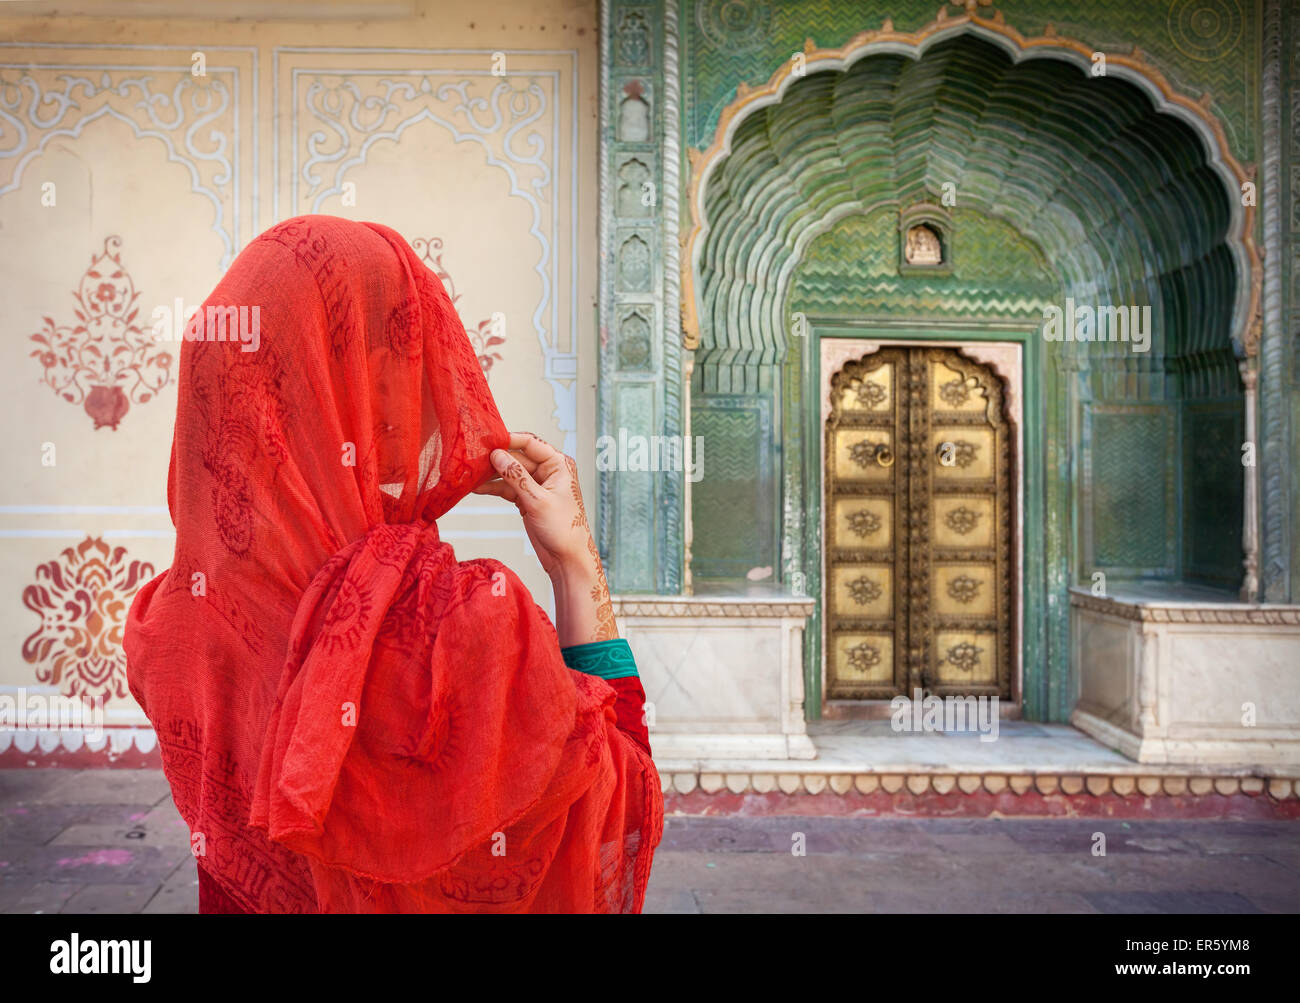 Woman in red scarf looking at green gate door in City Palace of Jaipur, Rajasthan, India Stock Photo